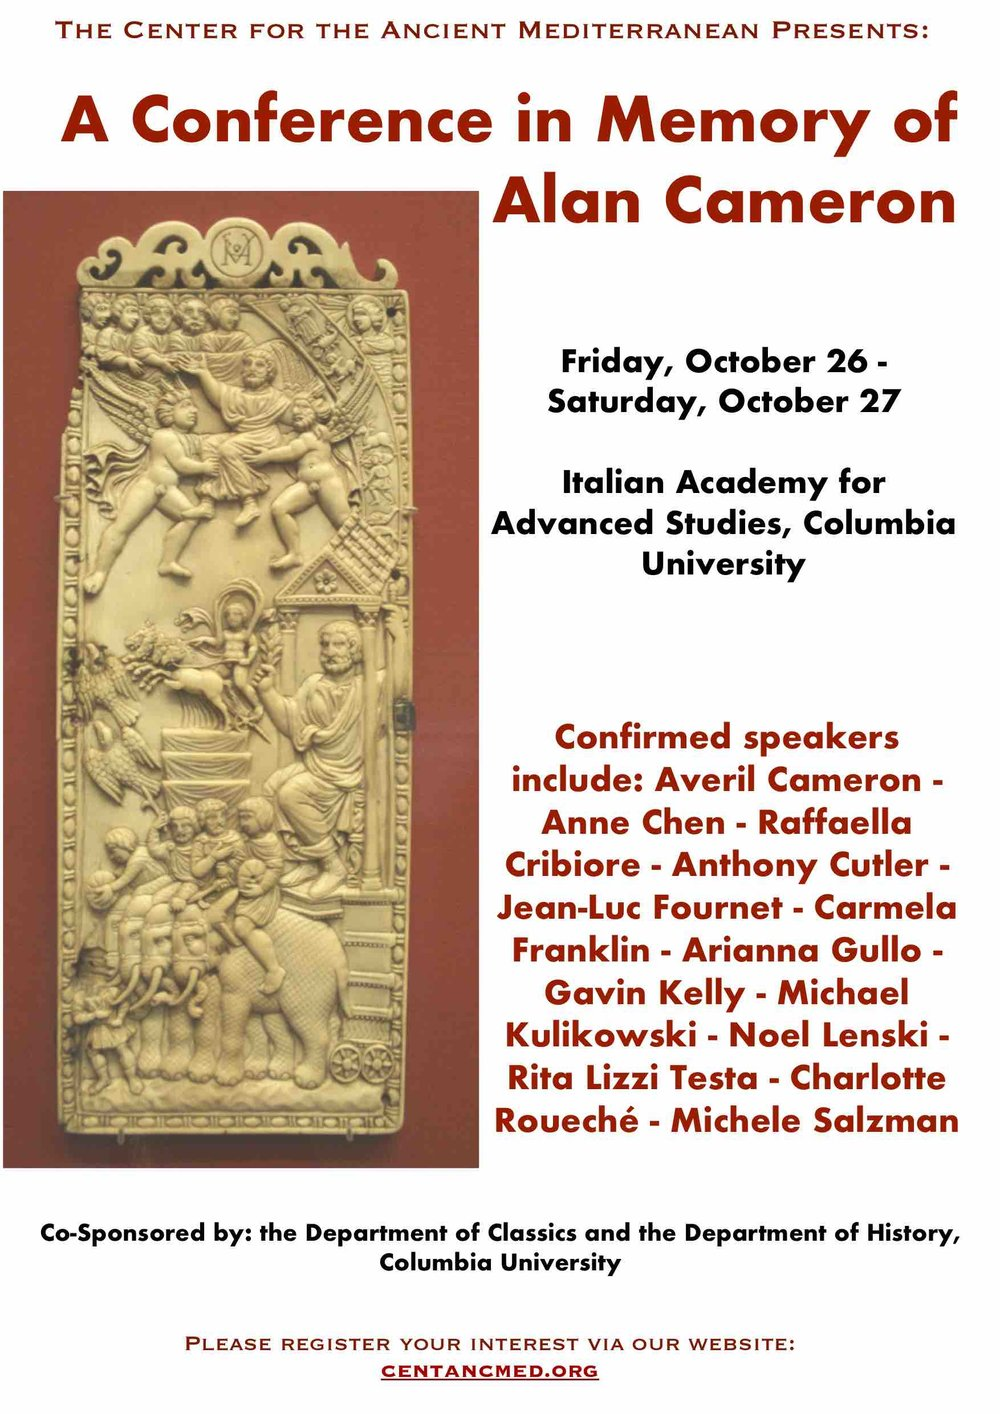 Conference in Memory of Alan Cameron_small.jpg